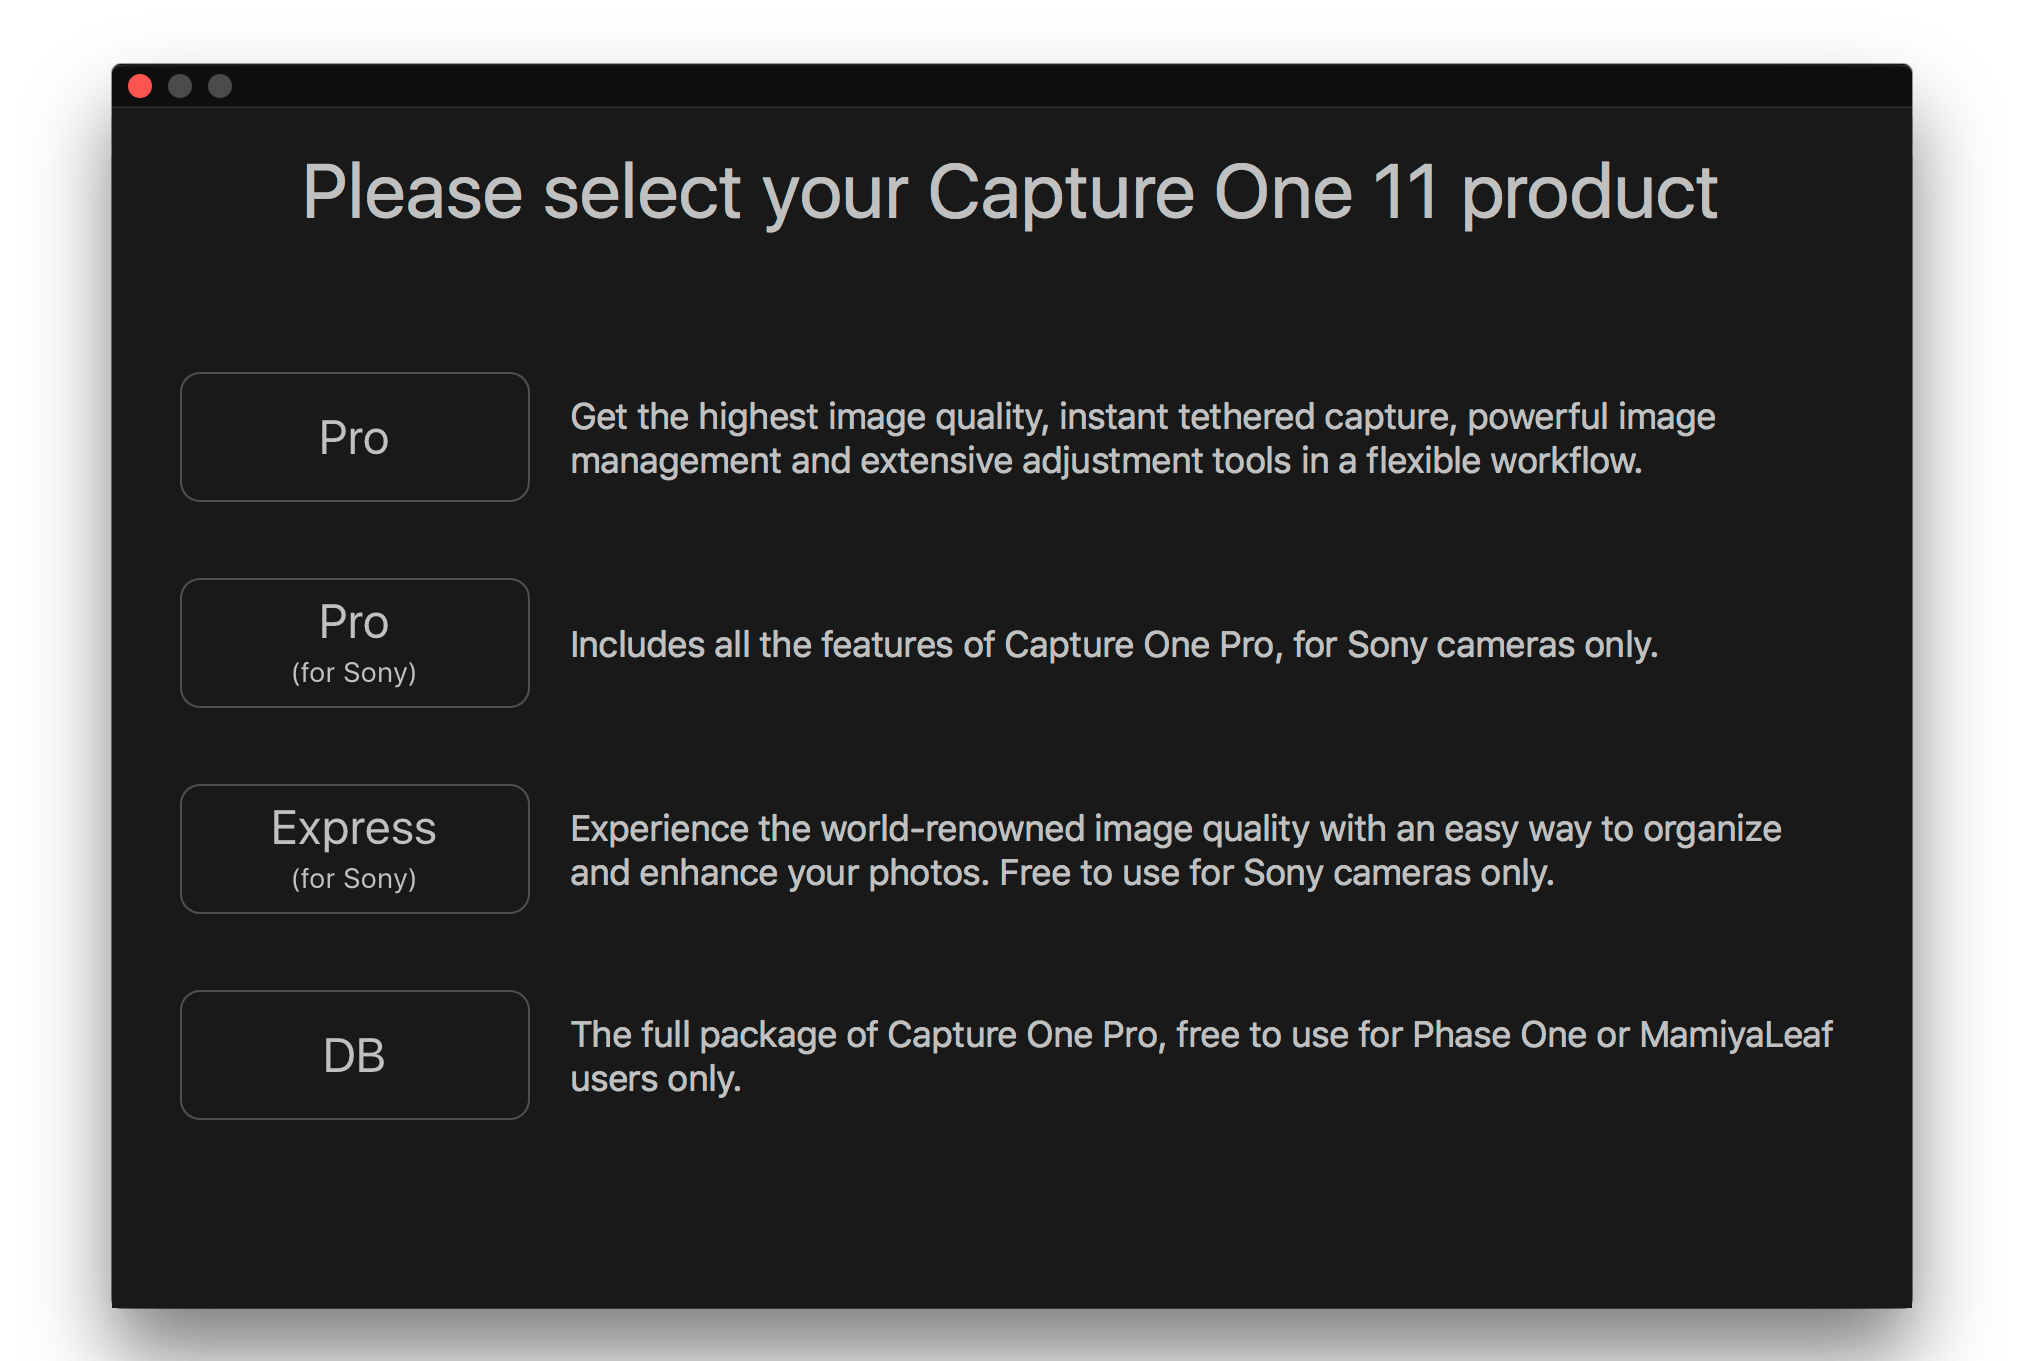 capture one 11, select your product